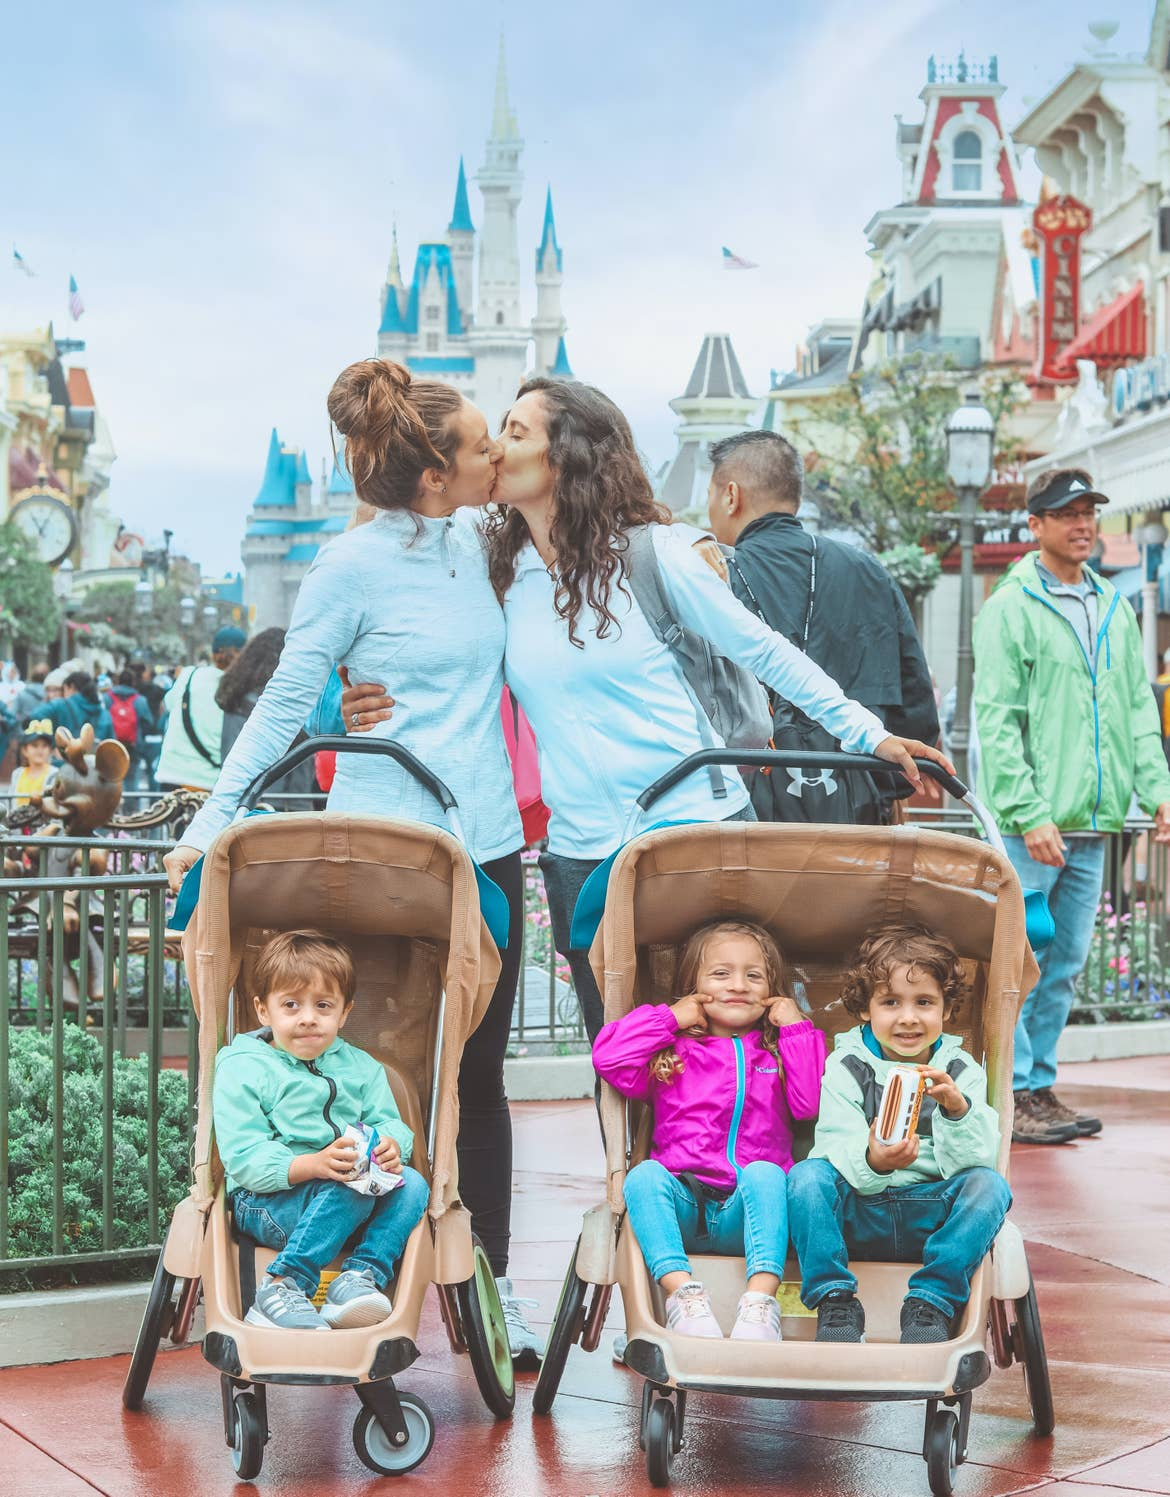 Featured Contributor, Raffinee Esquivel, poses with her family in front of the Magic Kingdom at Walt Disney World resort.